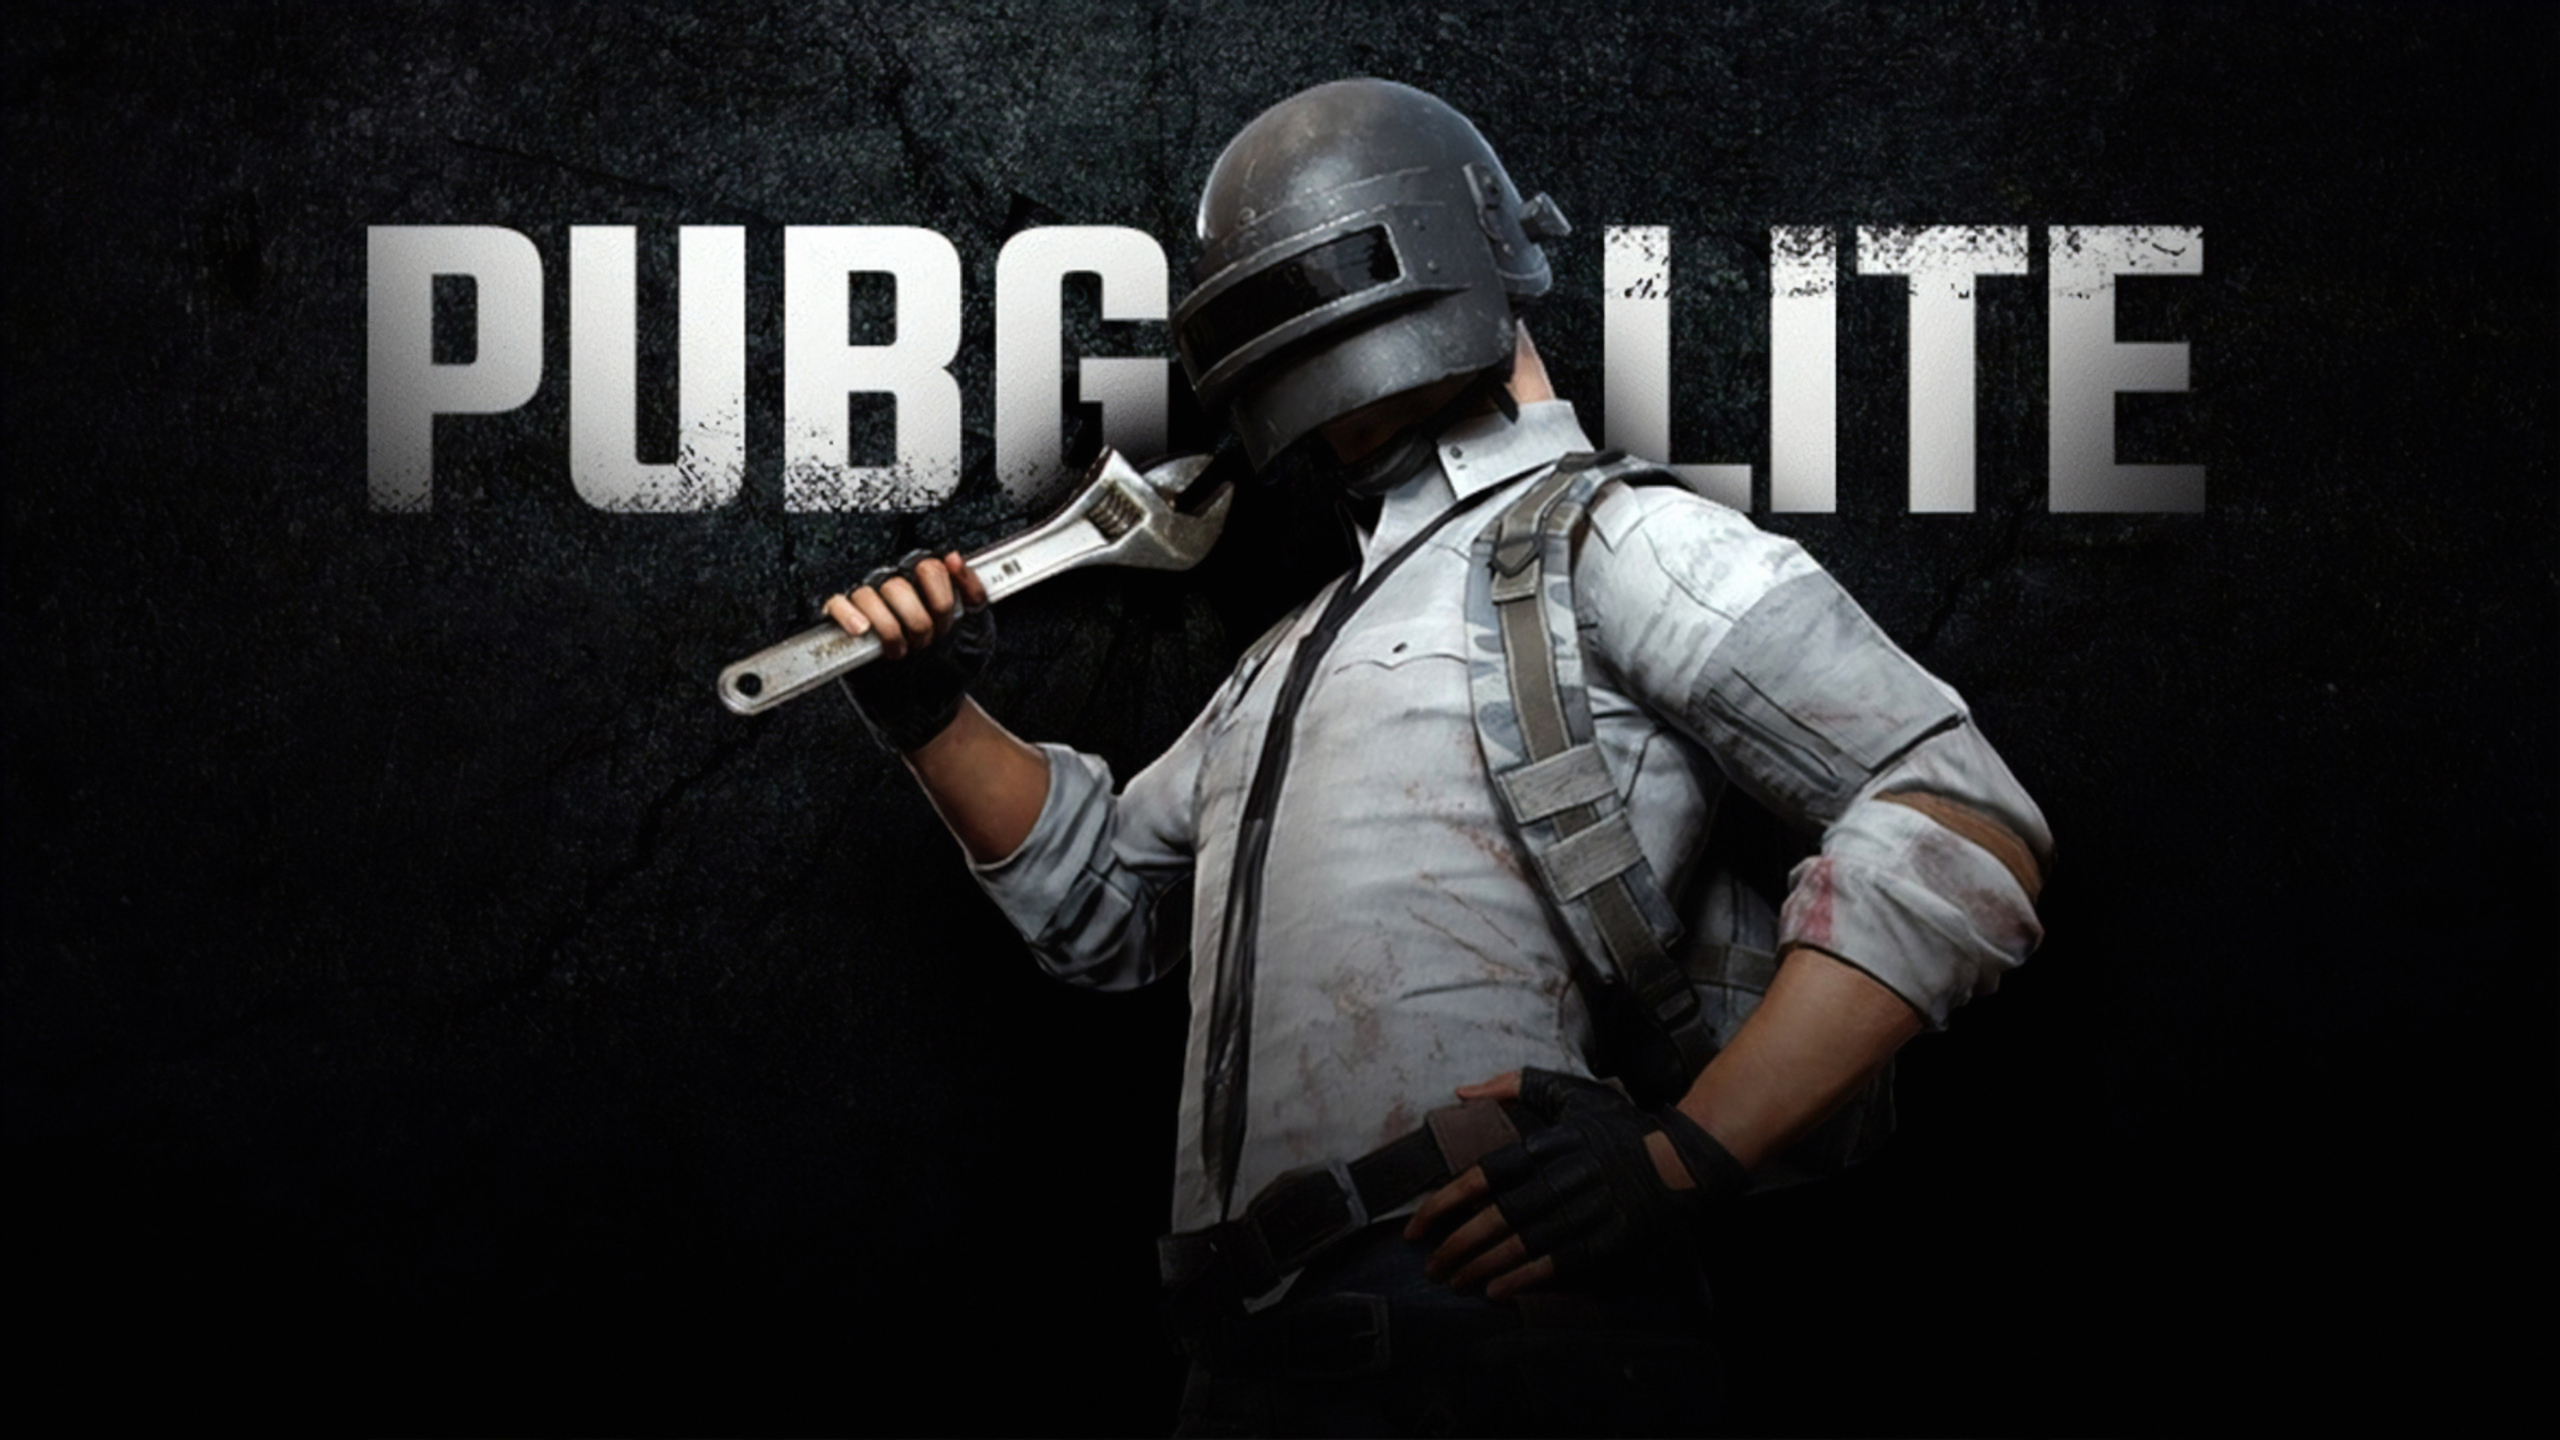 2560x1440 Pubg Lite 1440p Resolution Hd 4k Wallpapers Images Backgrounds Photos And Pictures